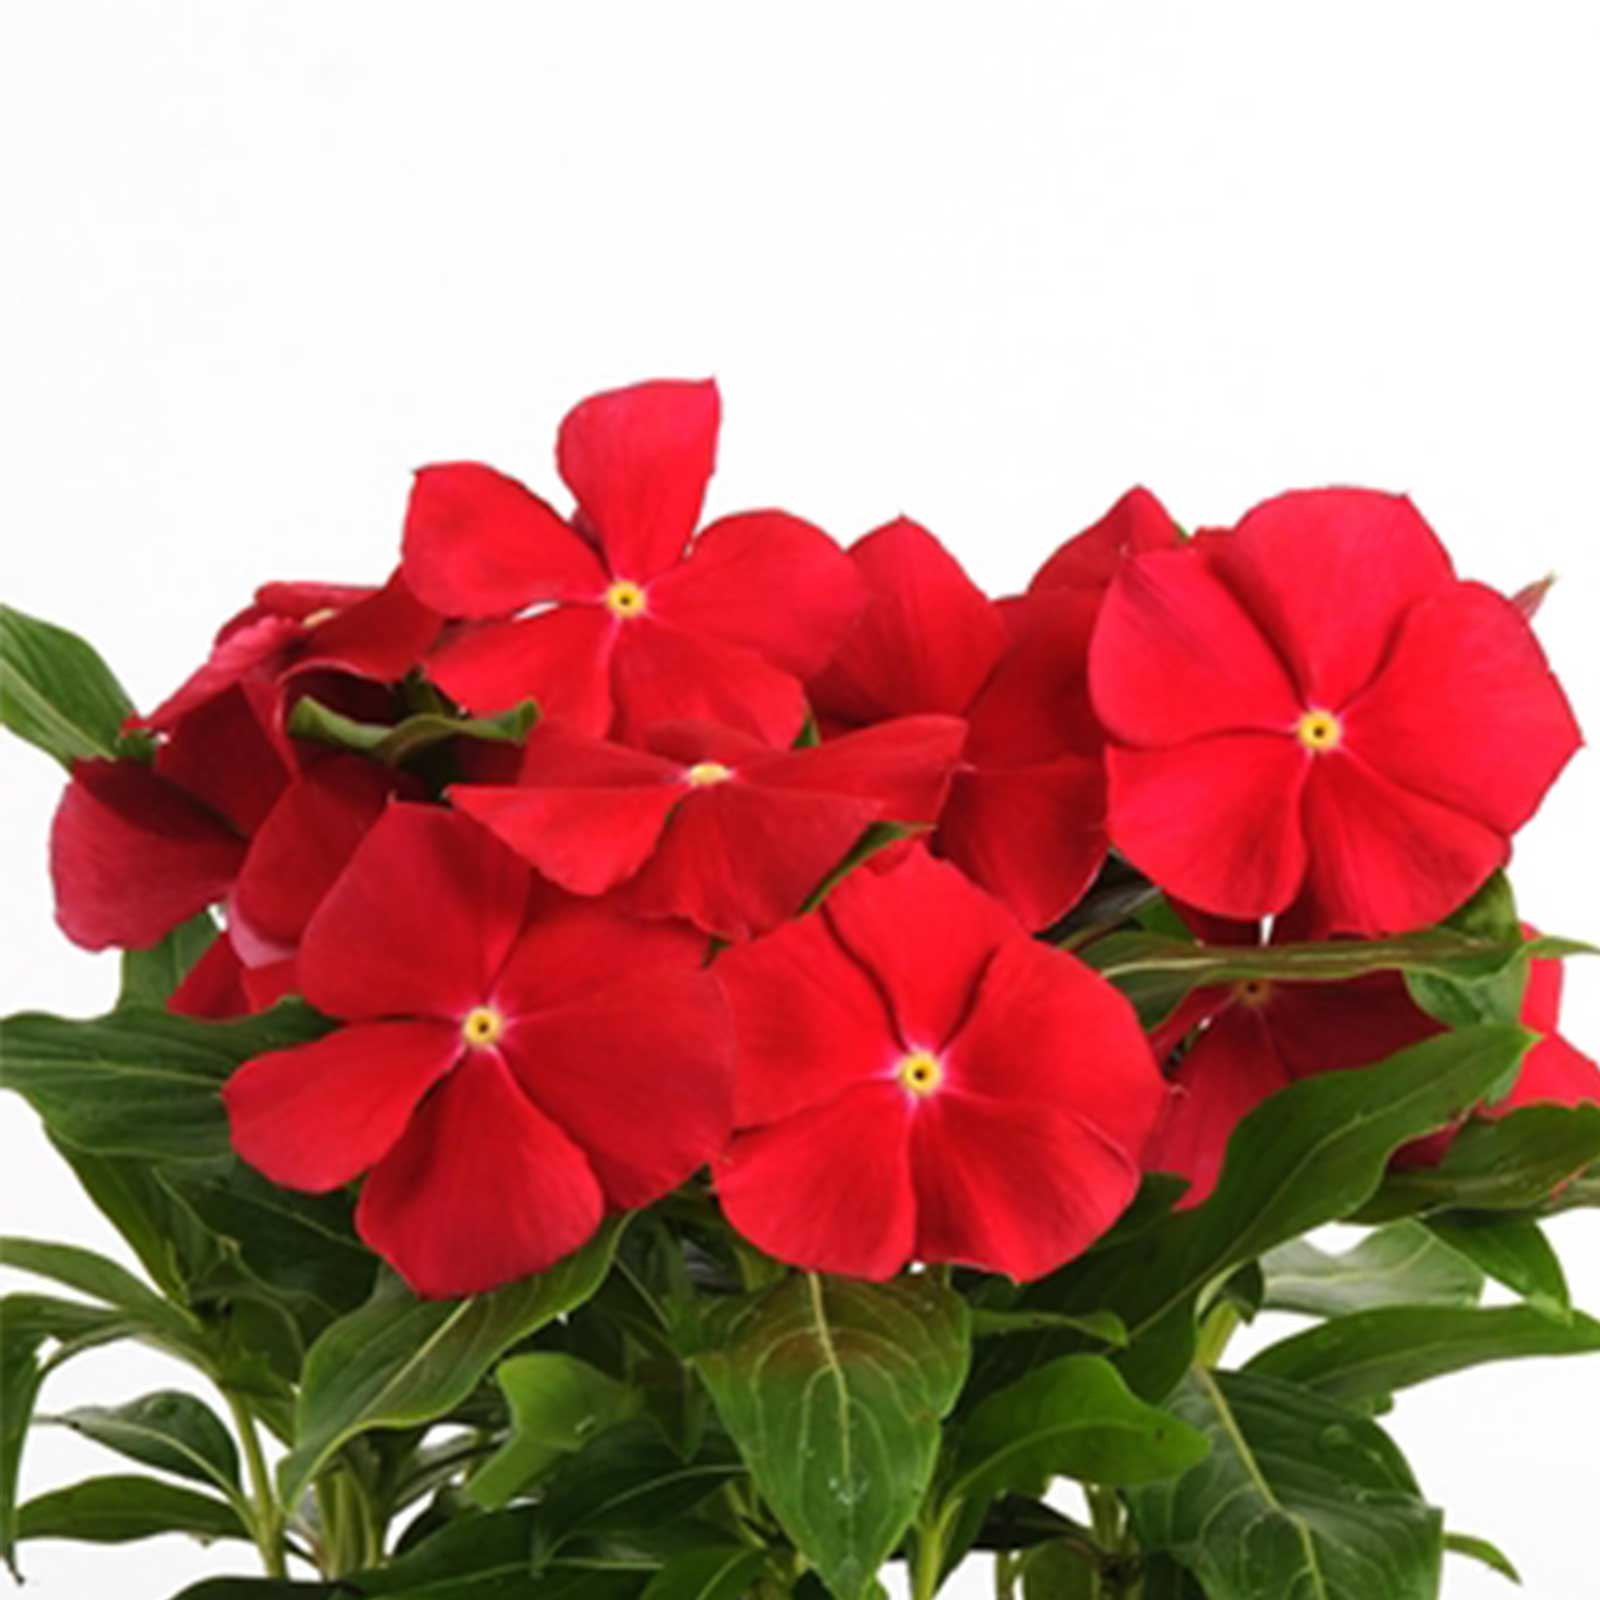 Vinca Flower Garden Seeds Pacifica Xp Really Red 1000 Seed Annual